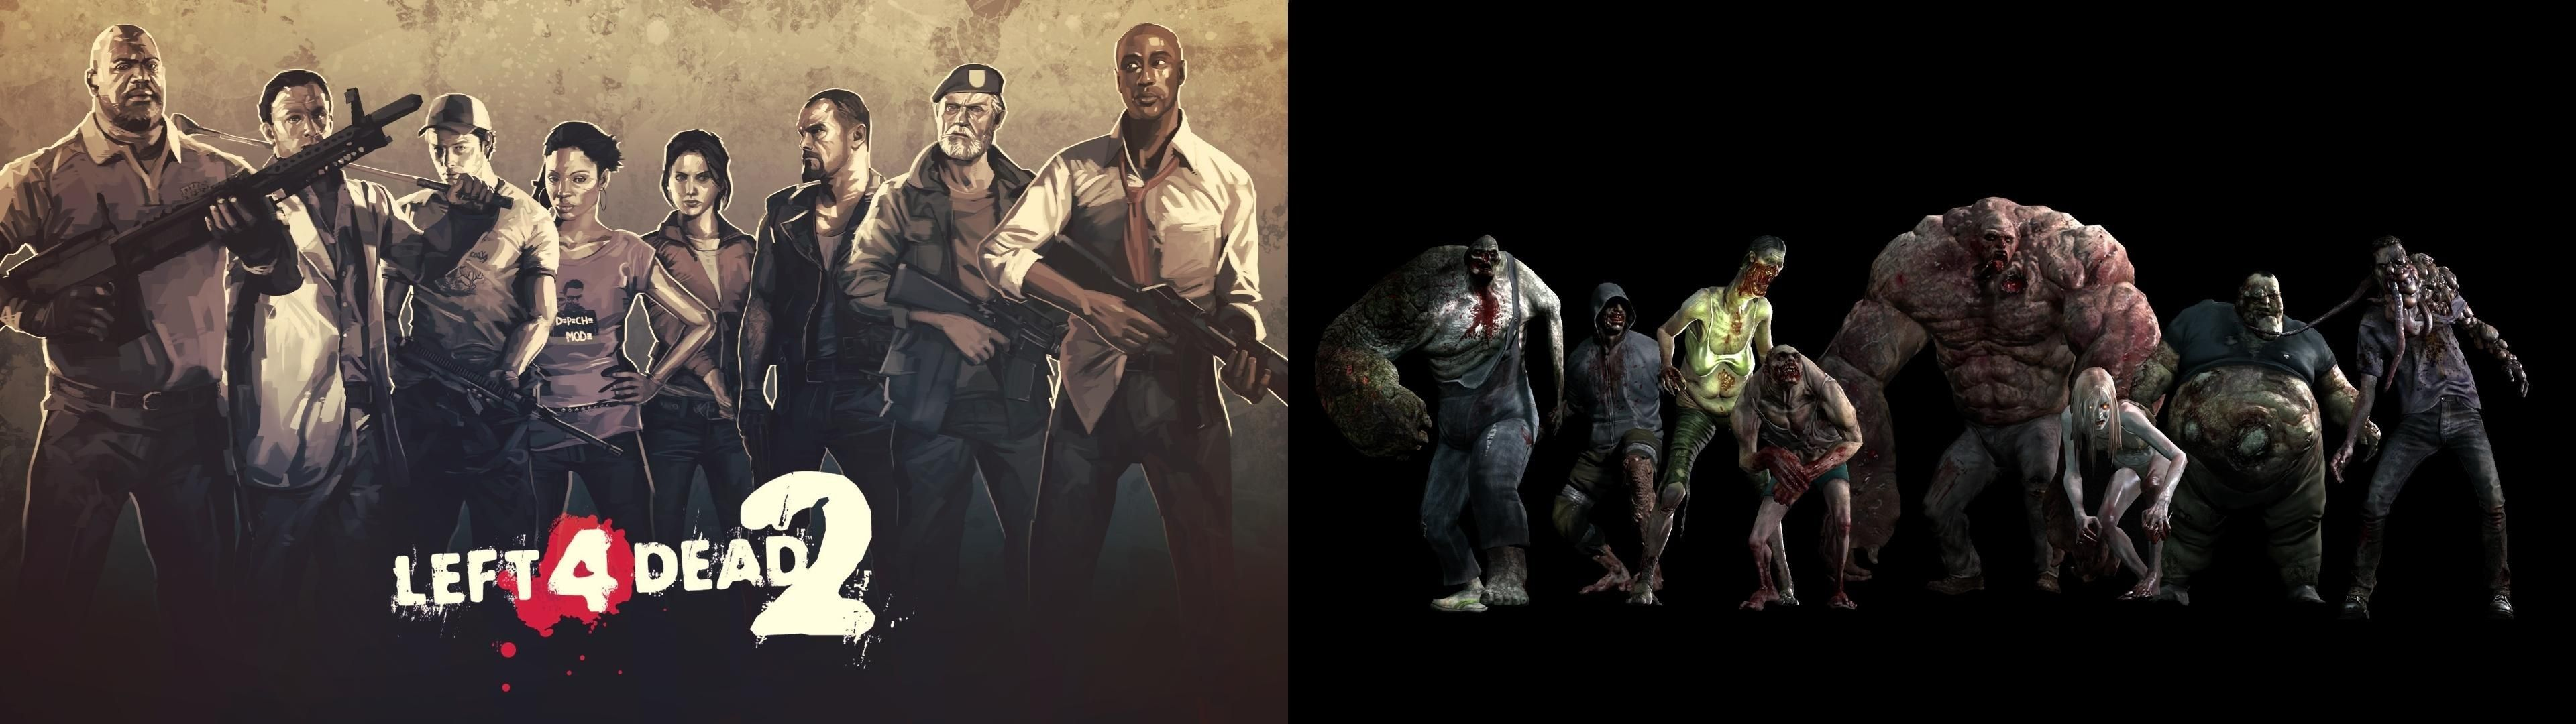 Res 3840x1080 I Made A Dual Monitor Left 4 Dead 2 Wallpaper Because I Didn T Find Wallpaper View Wallpaper Character Wallpaper